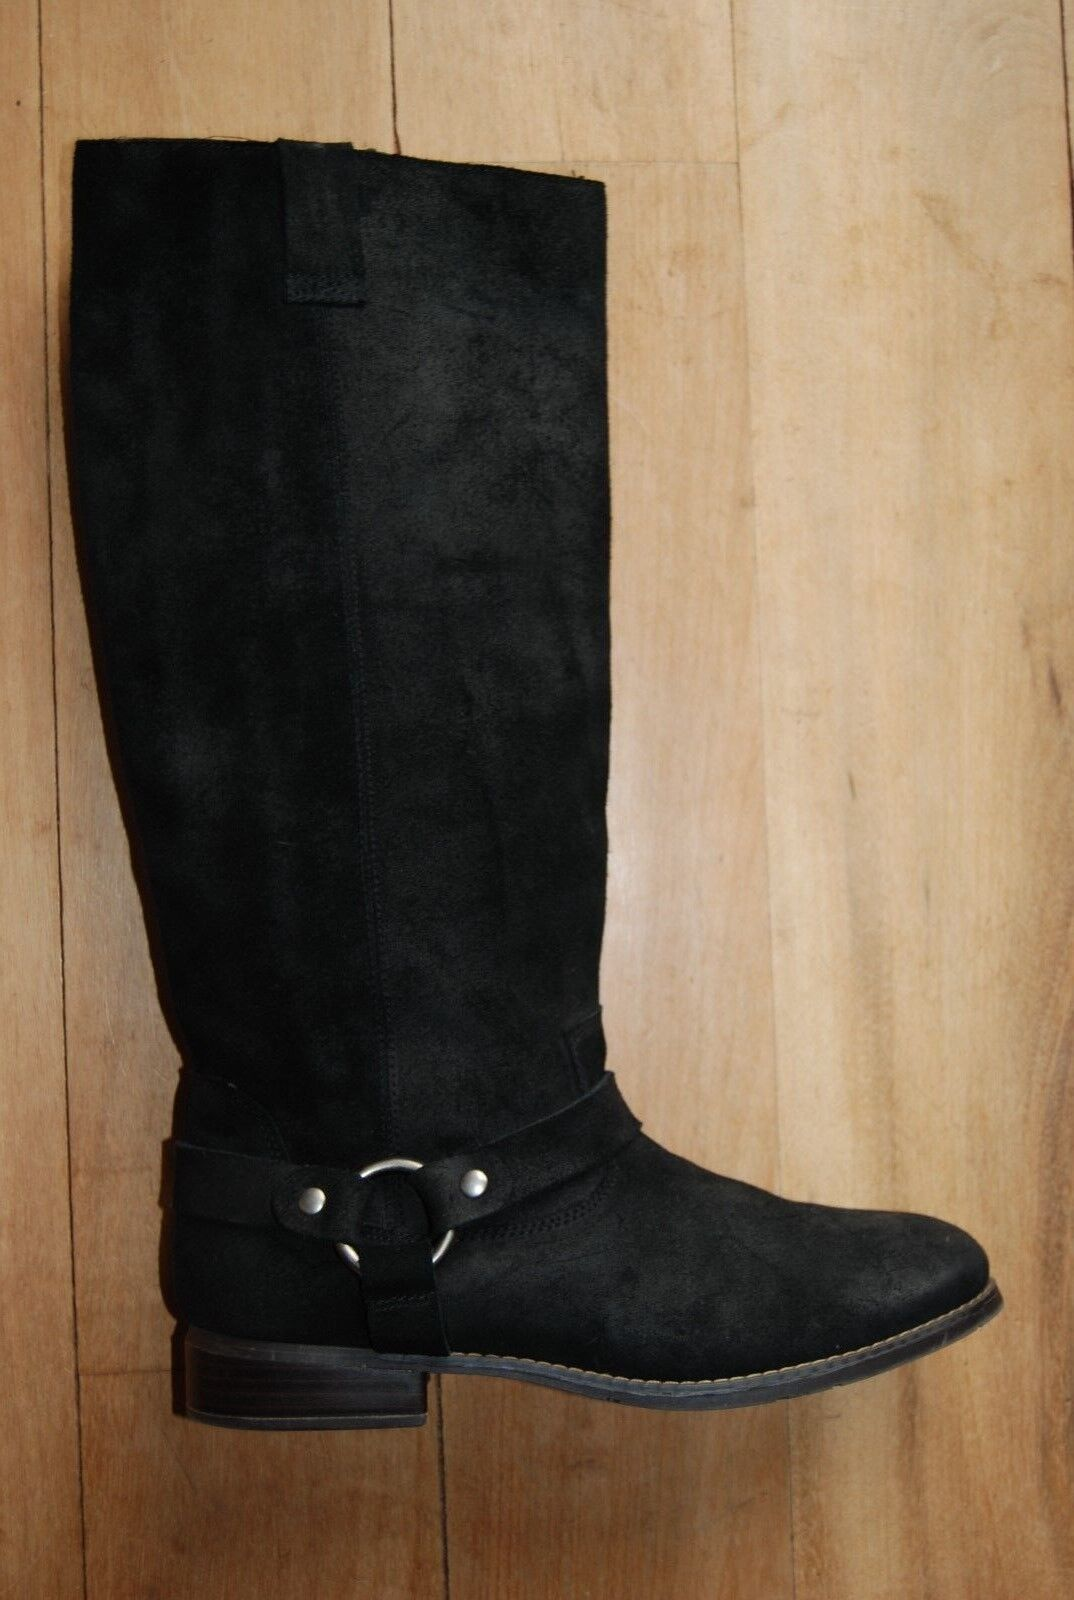 BLack Suede Tall DOLCE VITA Pull On Harness Style Boots 10